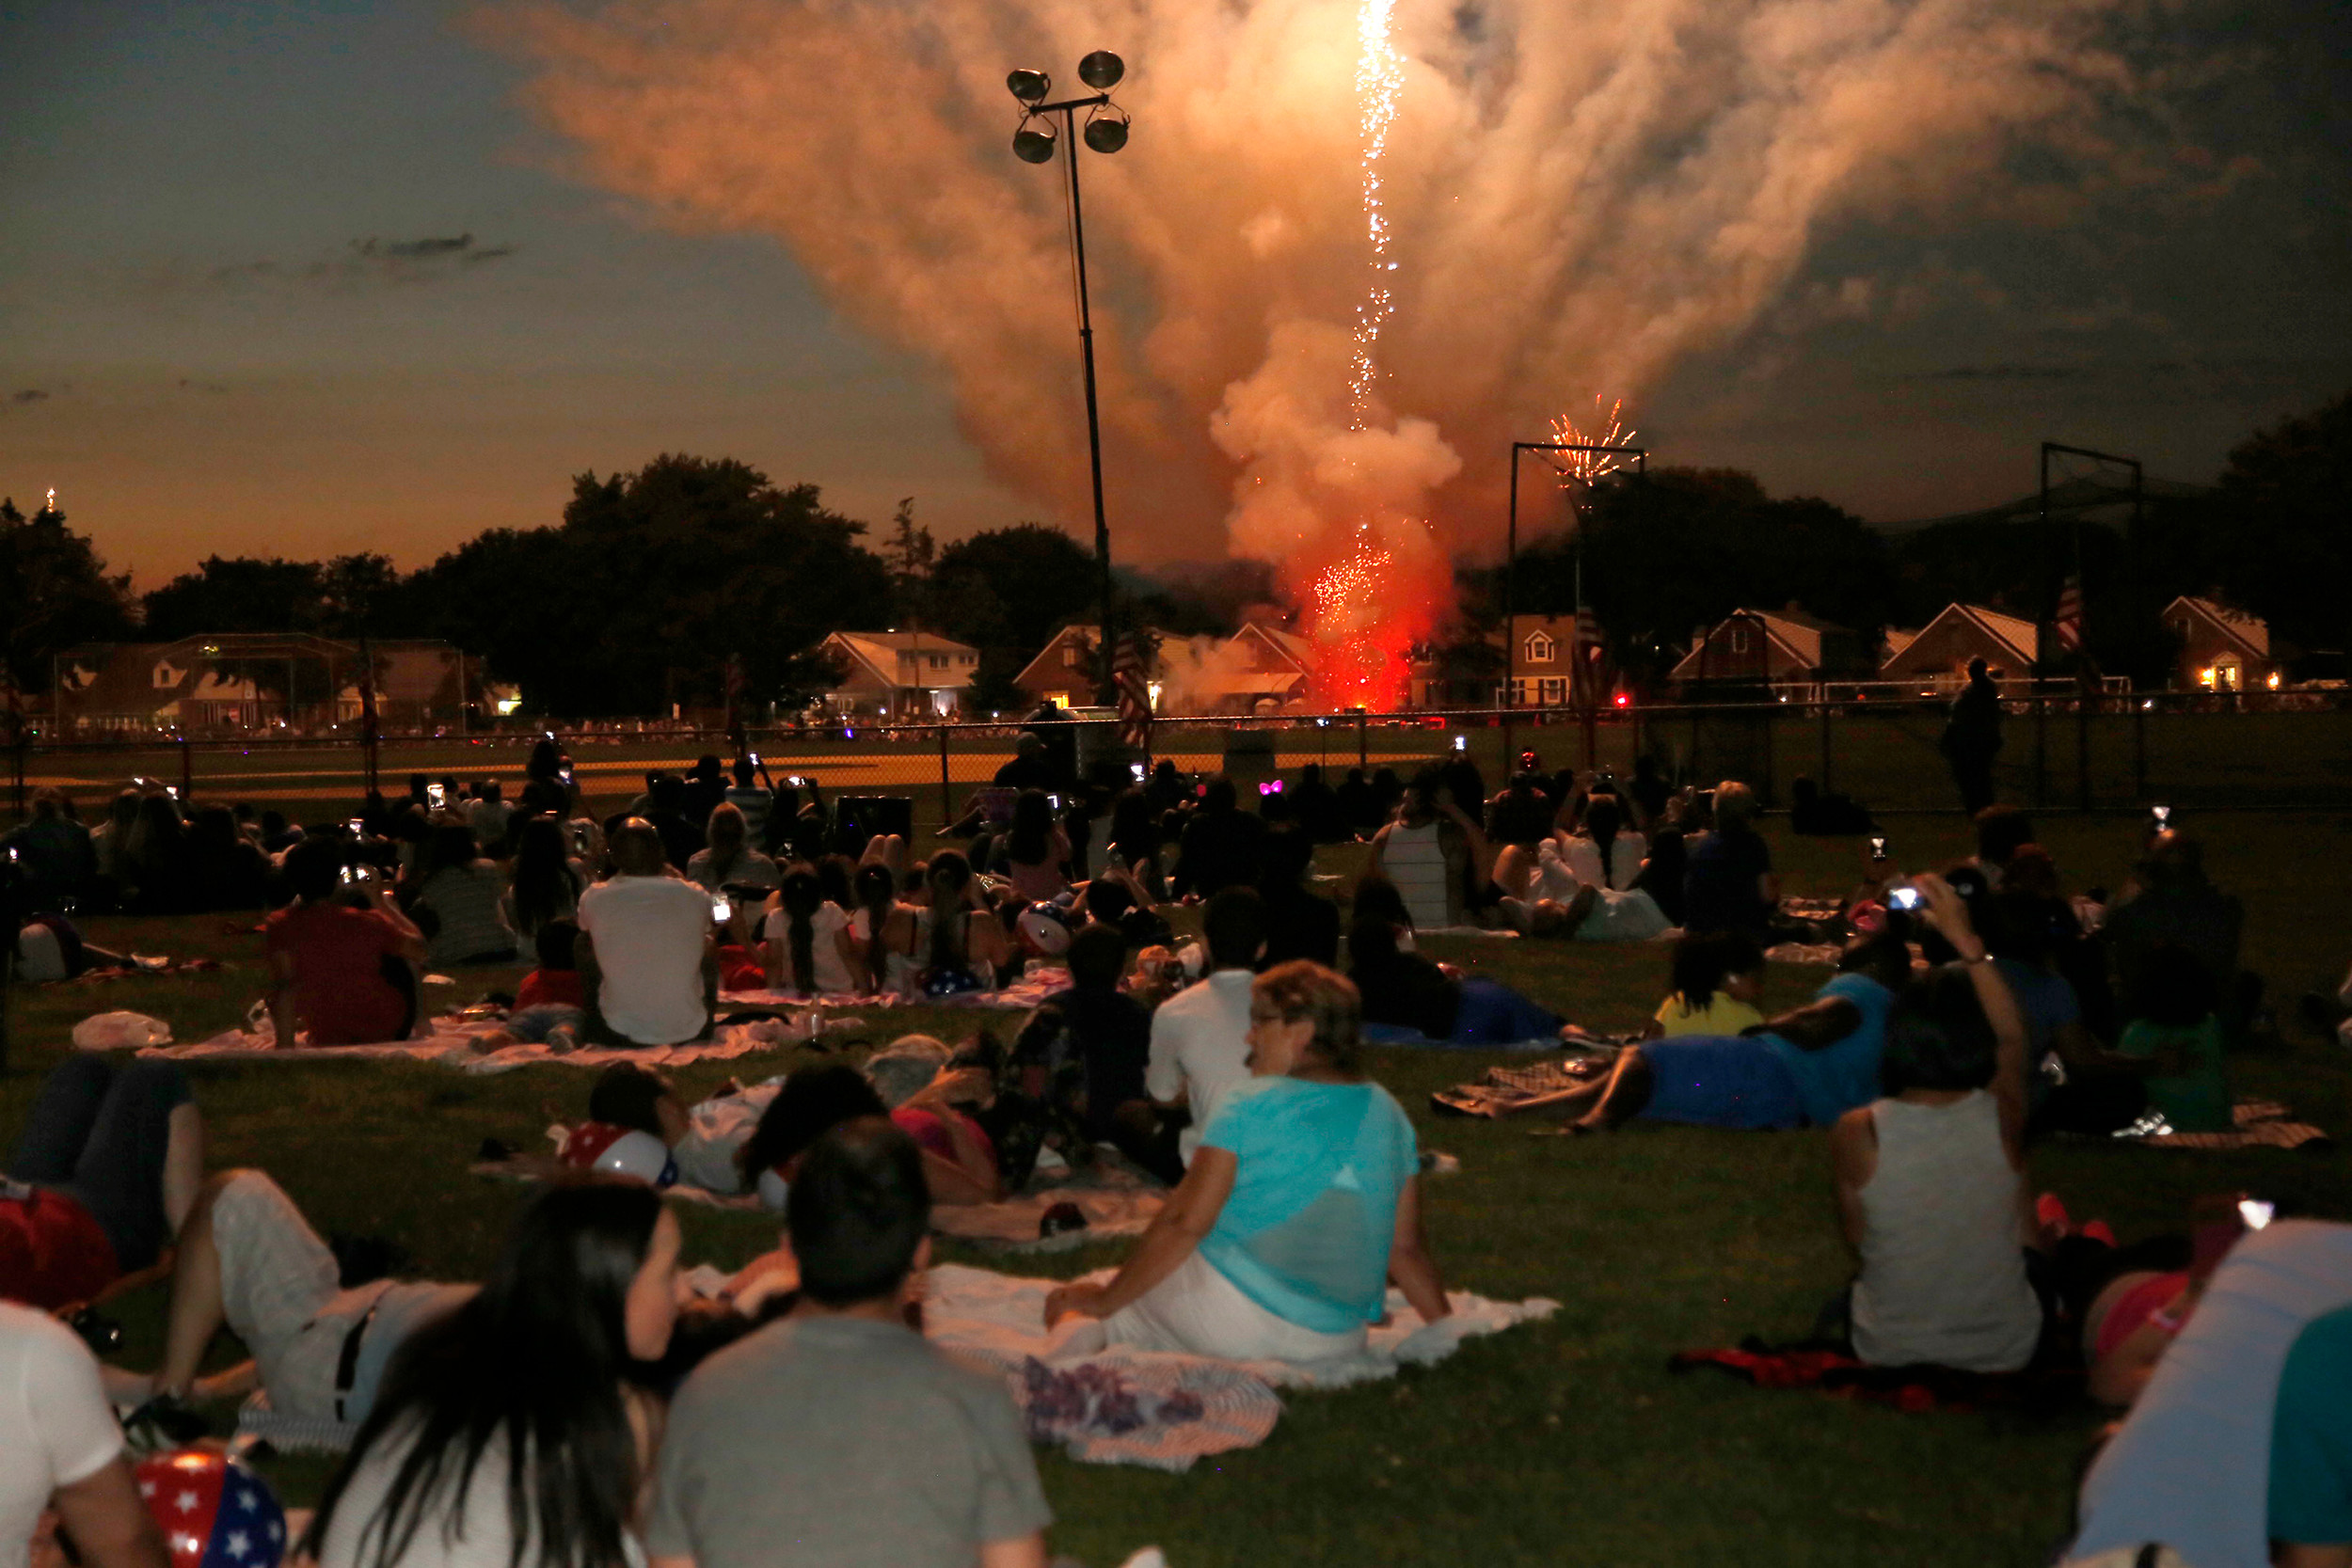 The crowd inside Fireman's Memorial Field in Valley stream got comfortable as the fireworks begin.